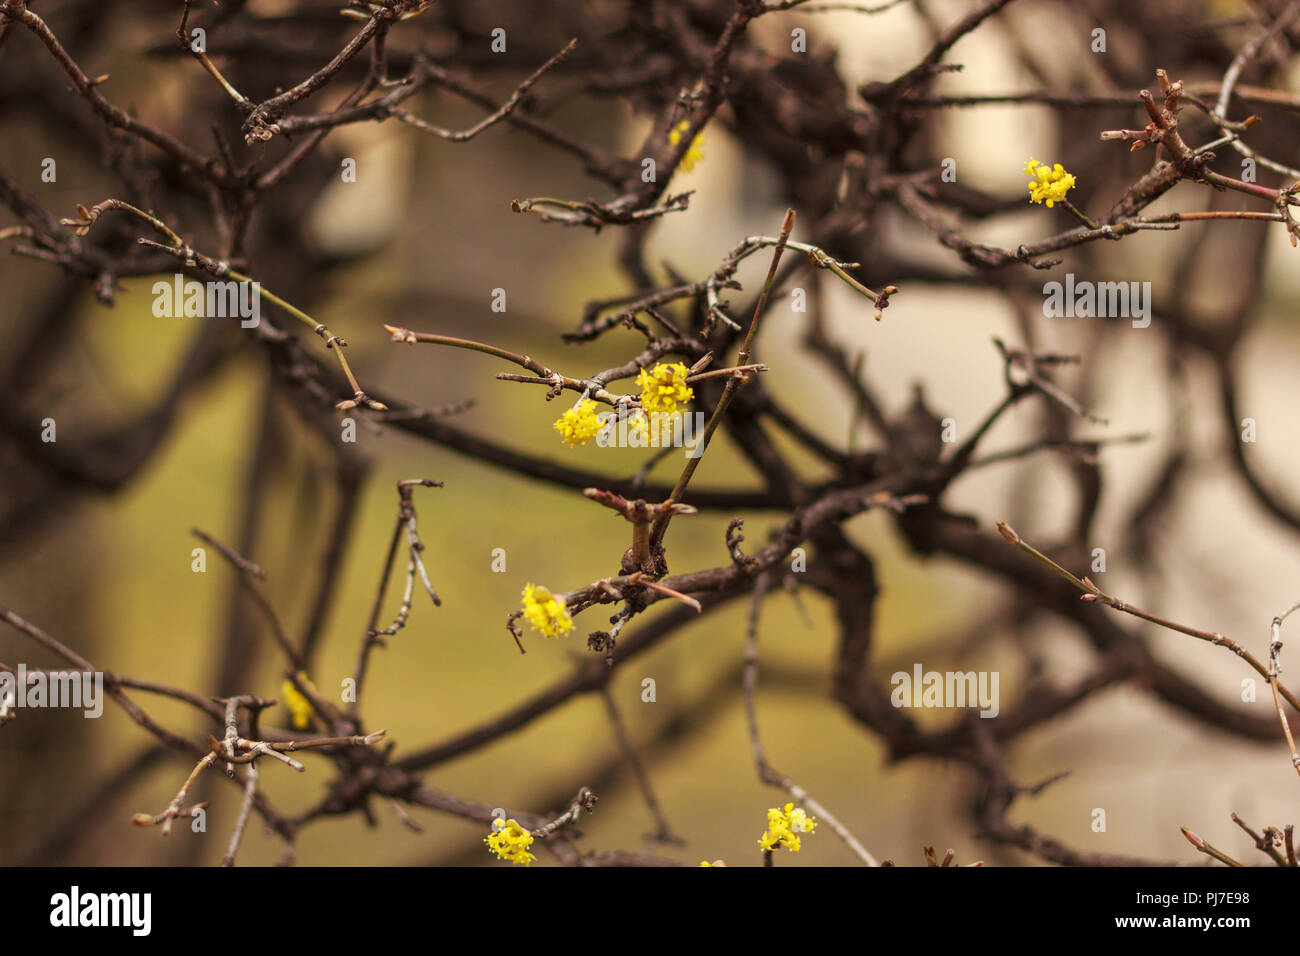 Tiny Yellow flower in leave less plant - Stock Image